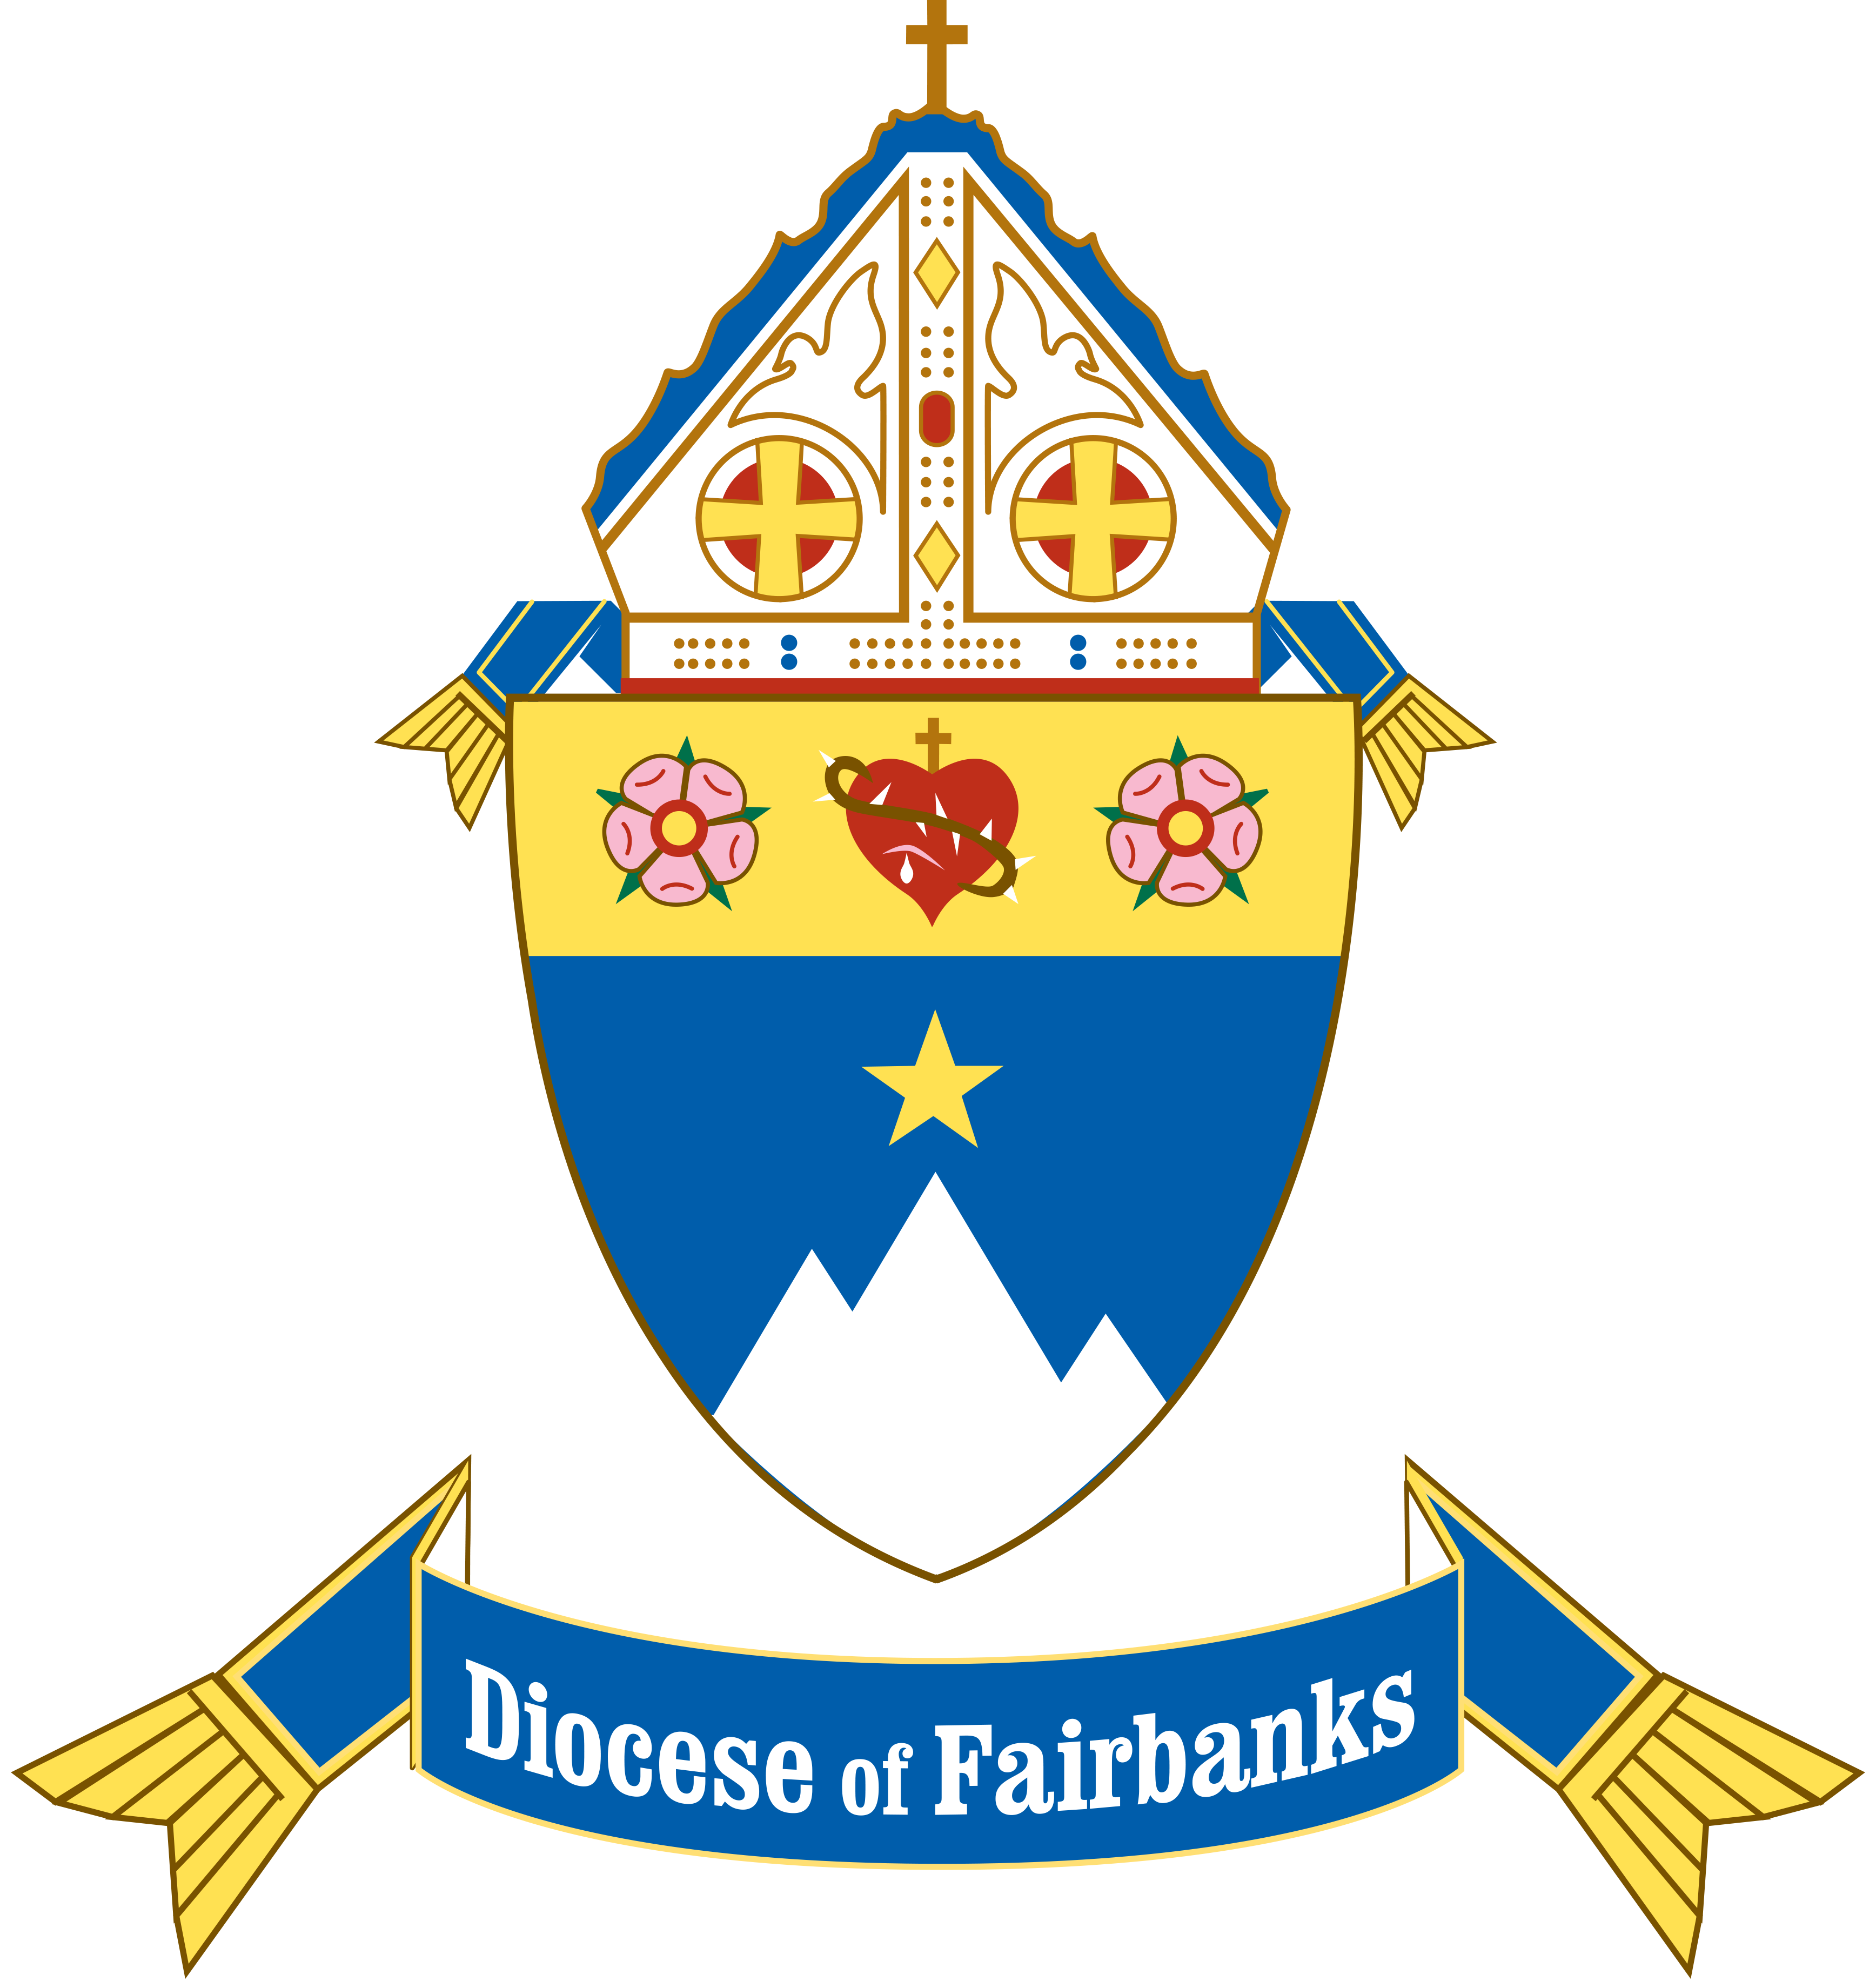 Diocese-of-Fairbanks-Crest